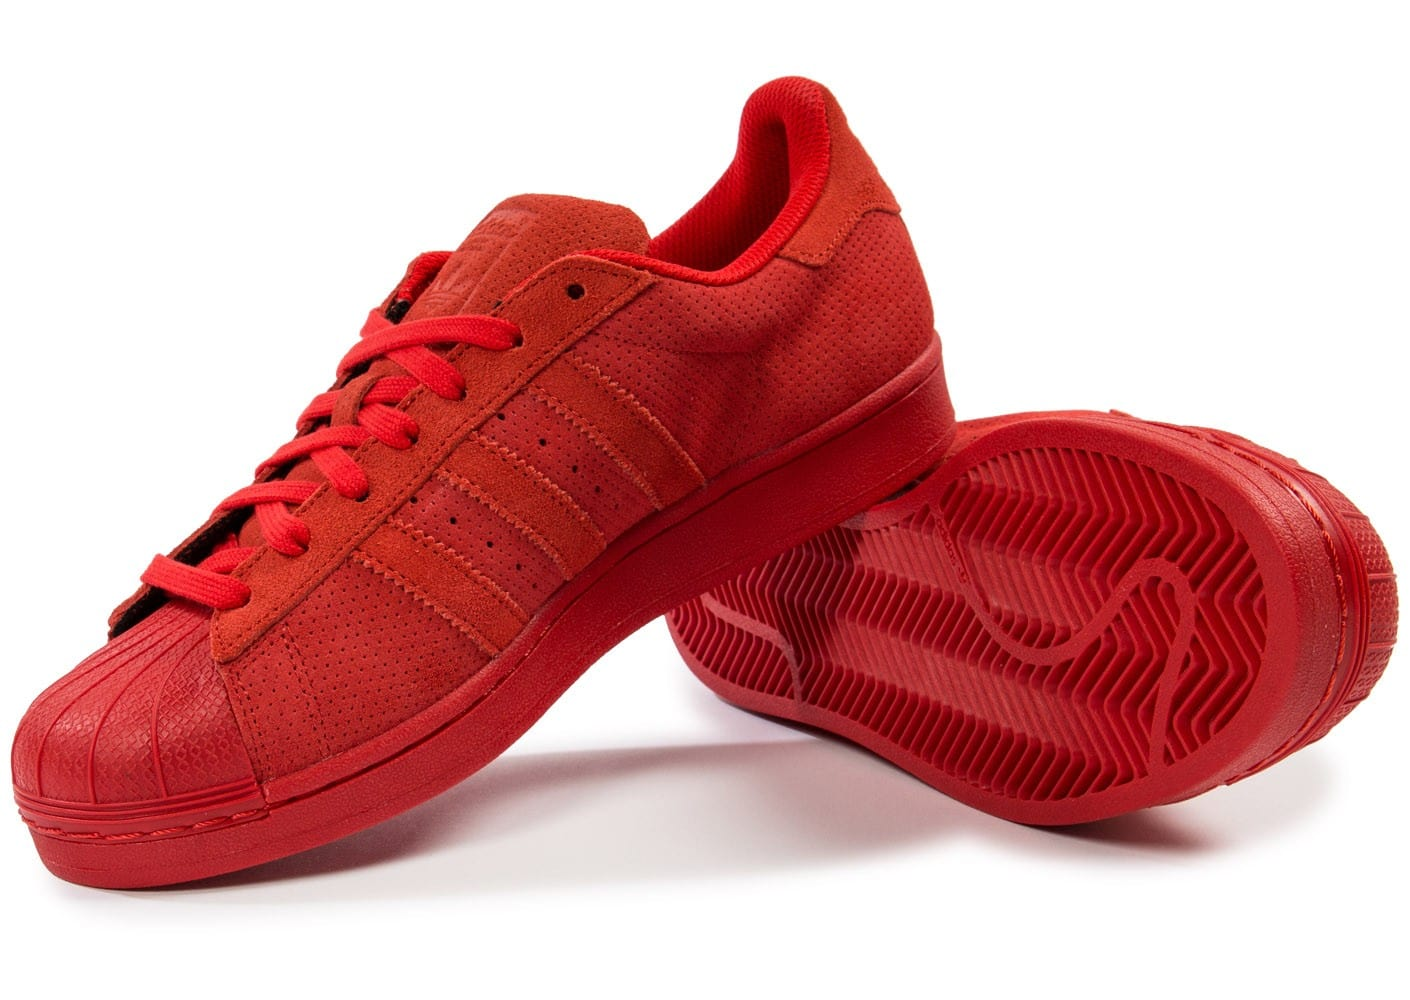 Chaussure adidas Rouge Stan Rouge Cuir Smith S75109 Adidas jLqSzVGMpU